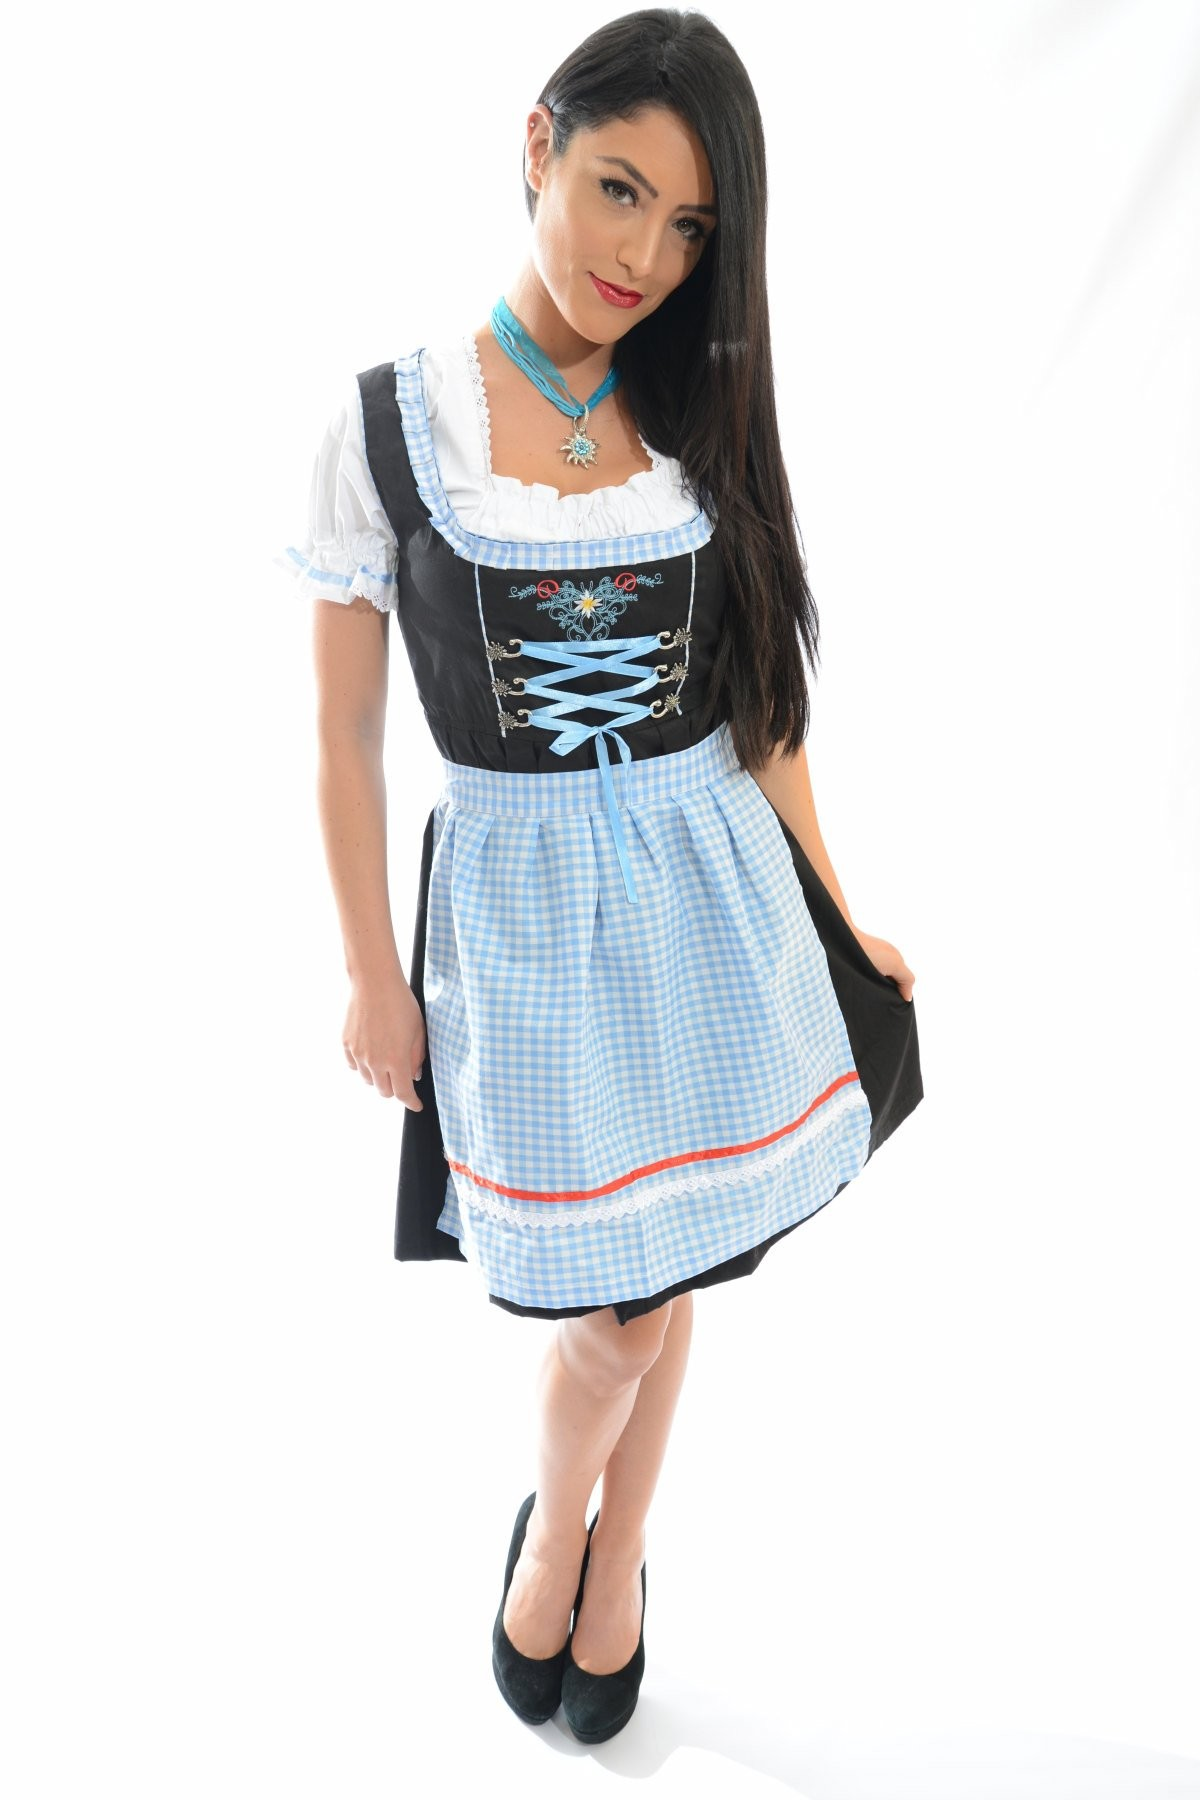 Oktoberfest Shirts For Women